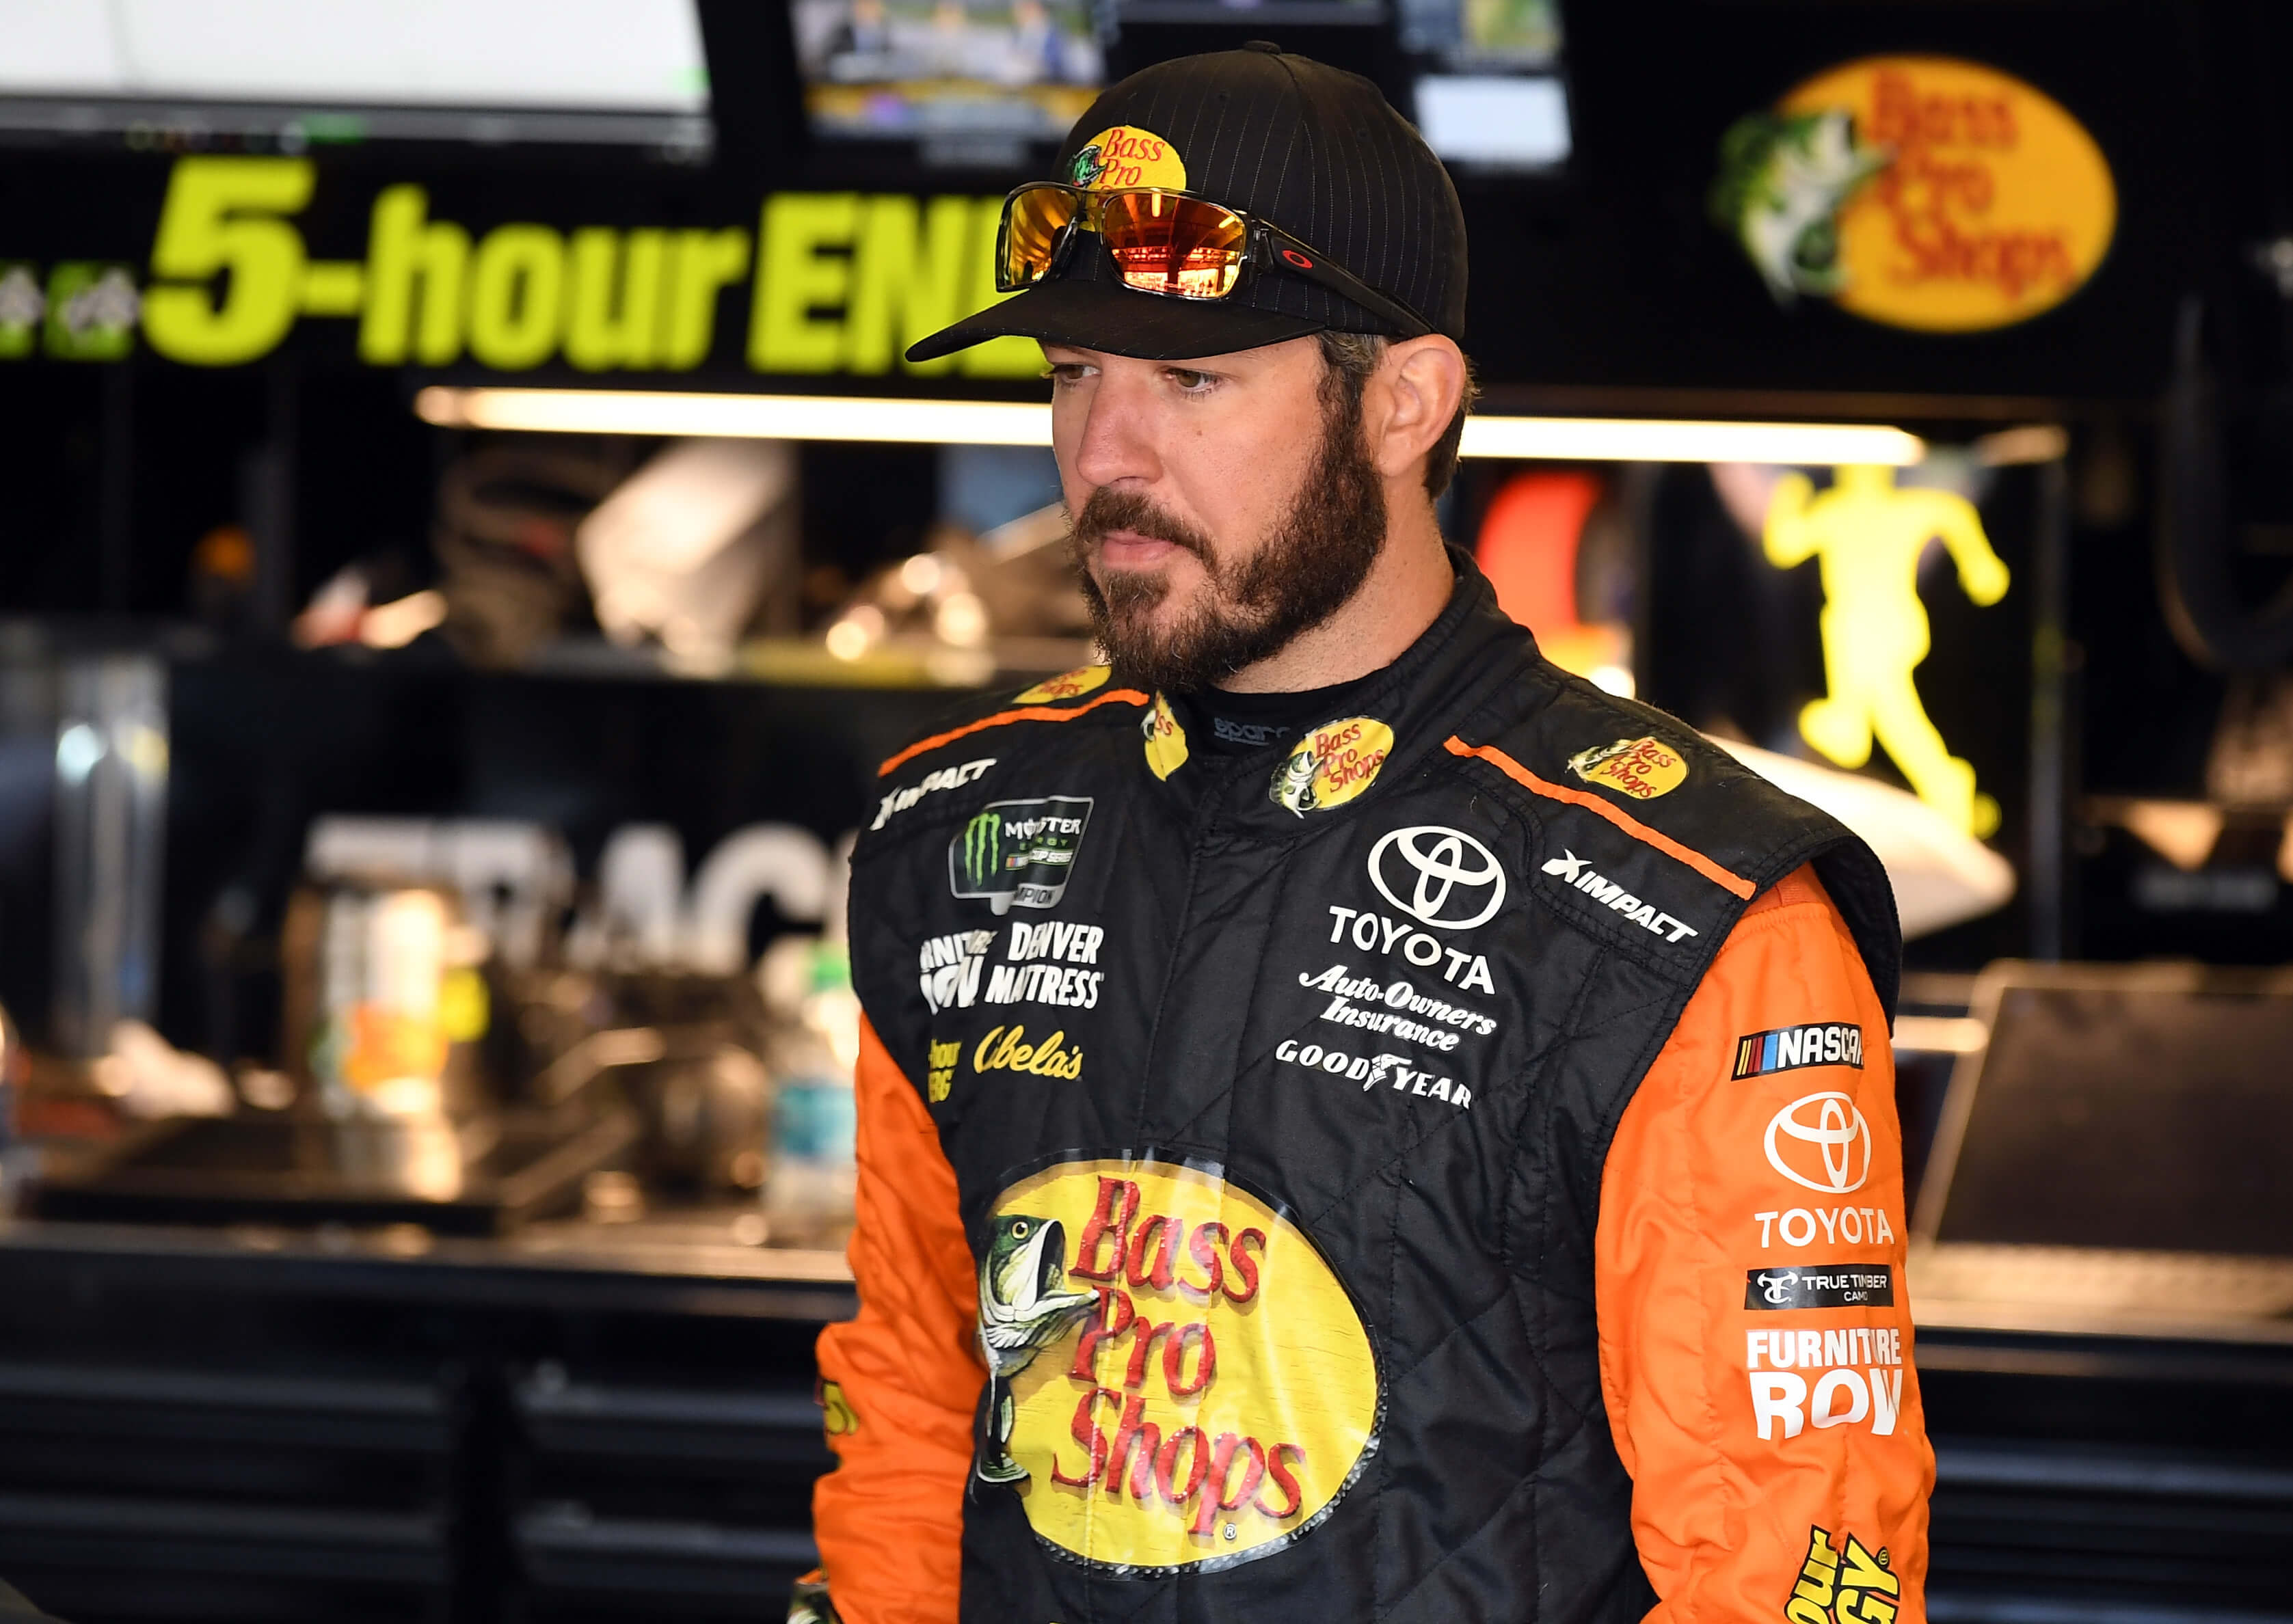 Martin Truex Jr at Texas Motor Speedway